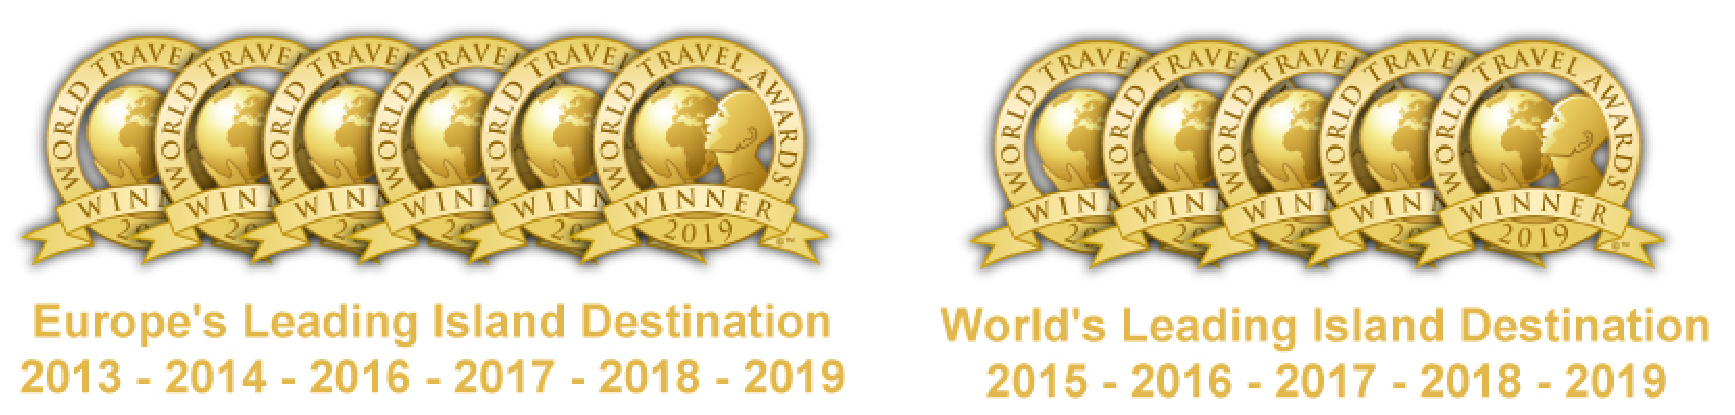 Europe's Leading Island Destination 2013, 2014, 2016, 2017, 2018, 2019